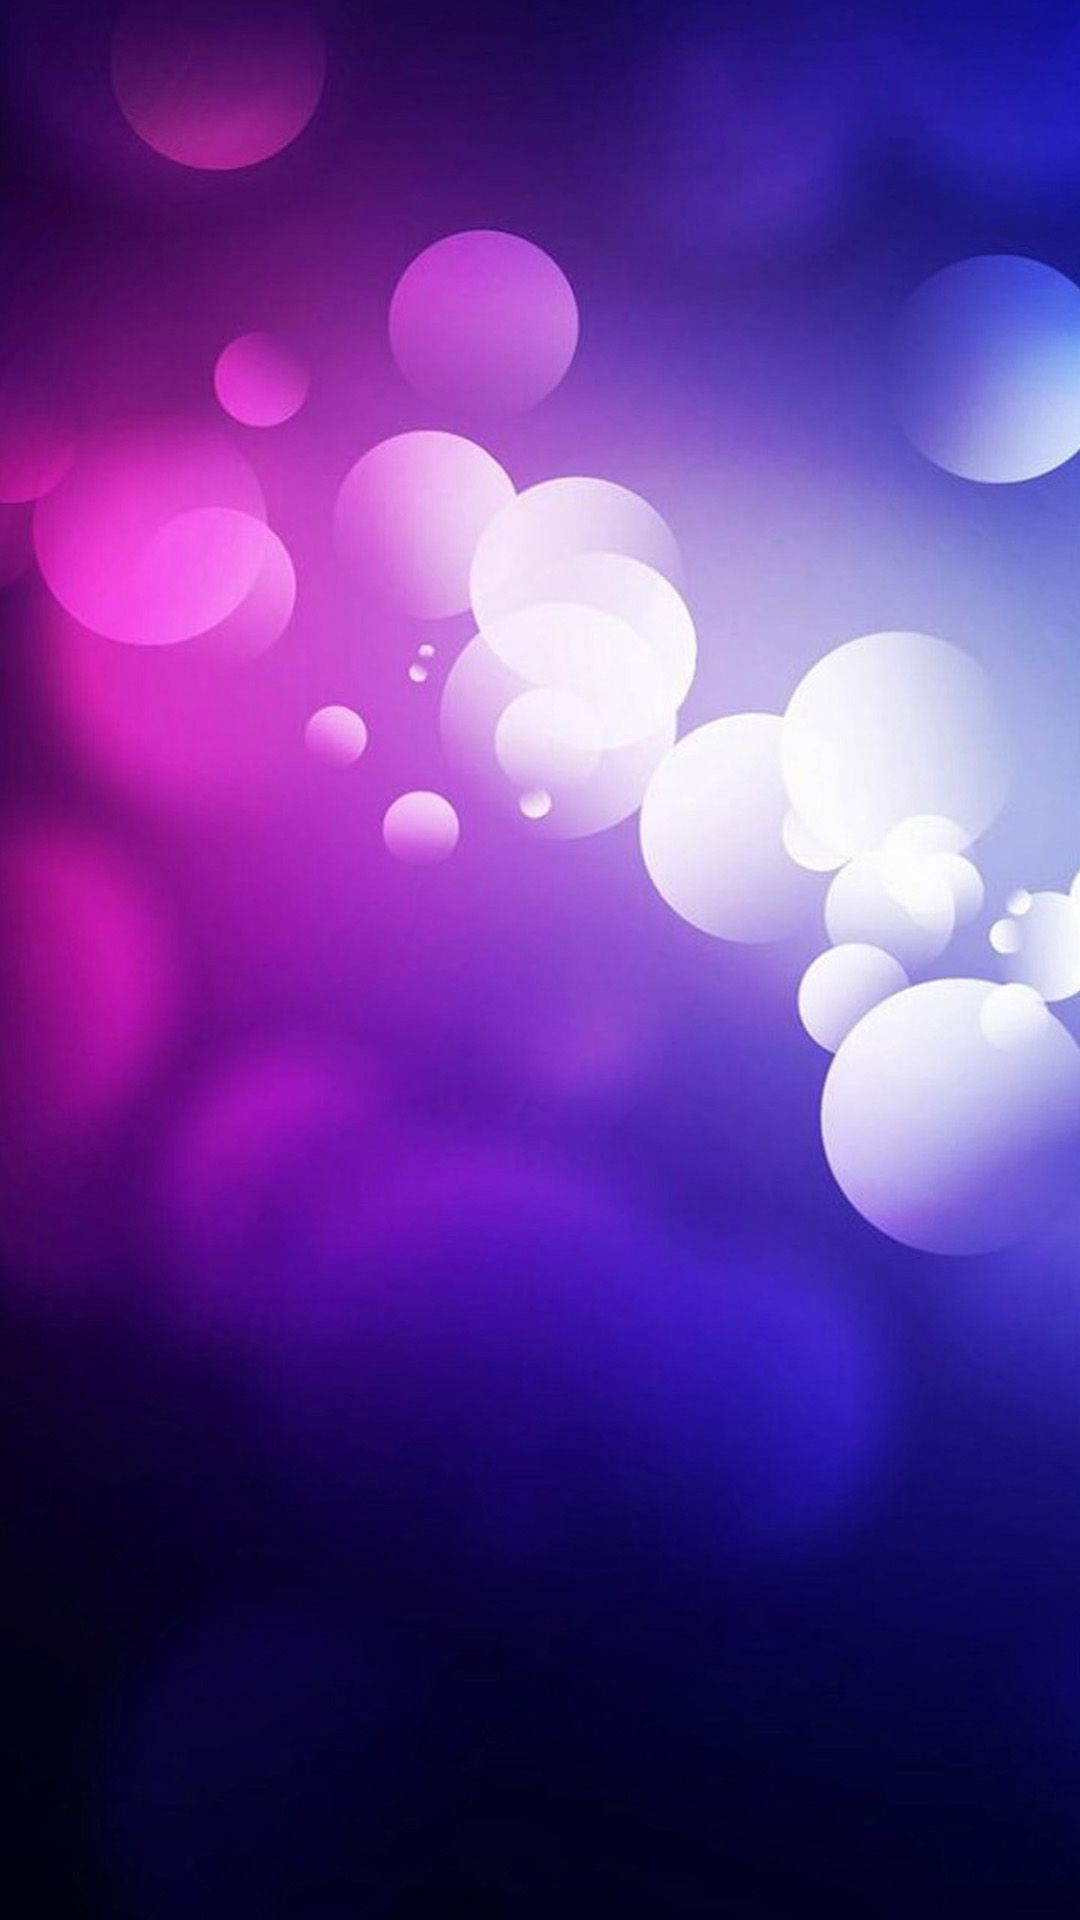 Round galaxy iphone 6 6 plus and iphone 5 4 wallpapers - Purple Abstract Bubbles Iphone 6 Plus Wallpaper